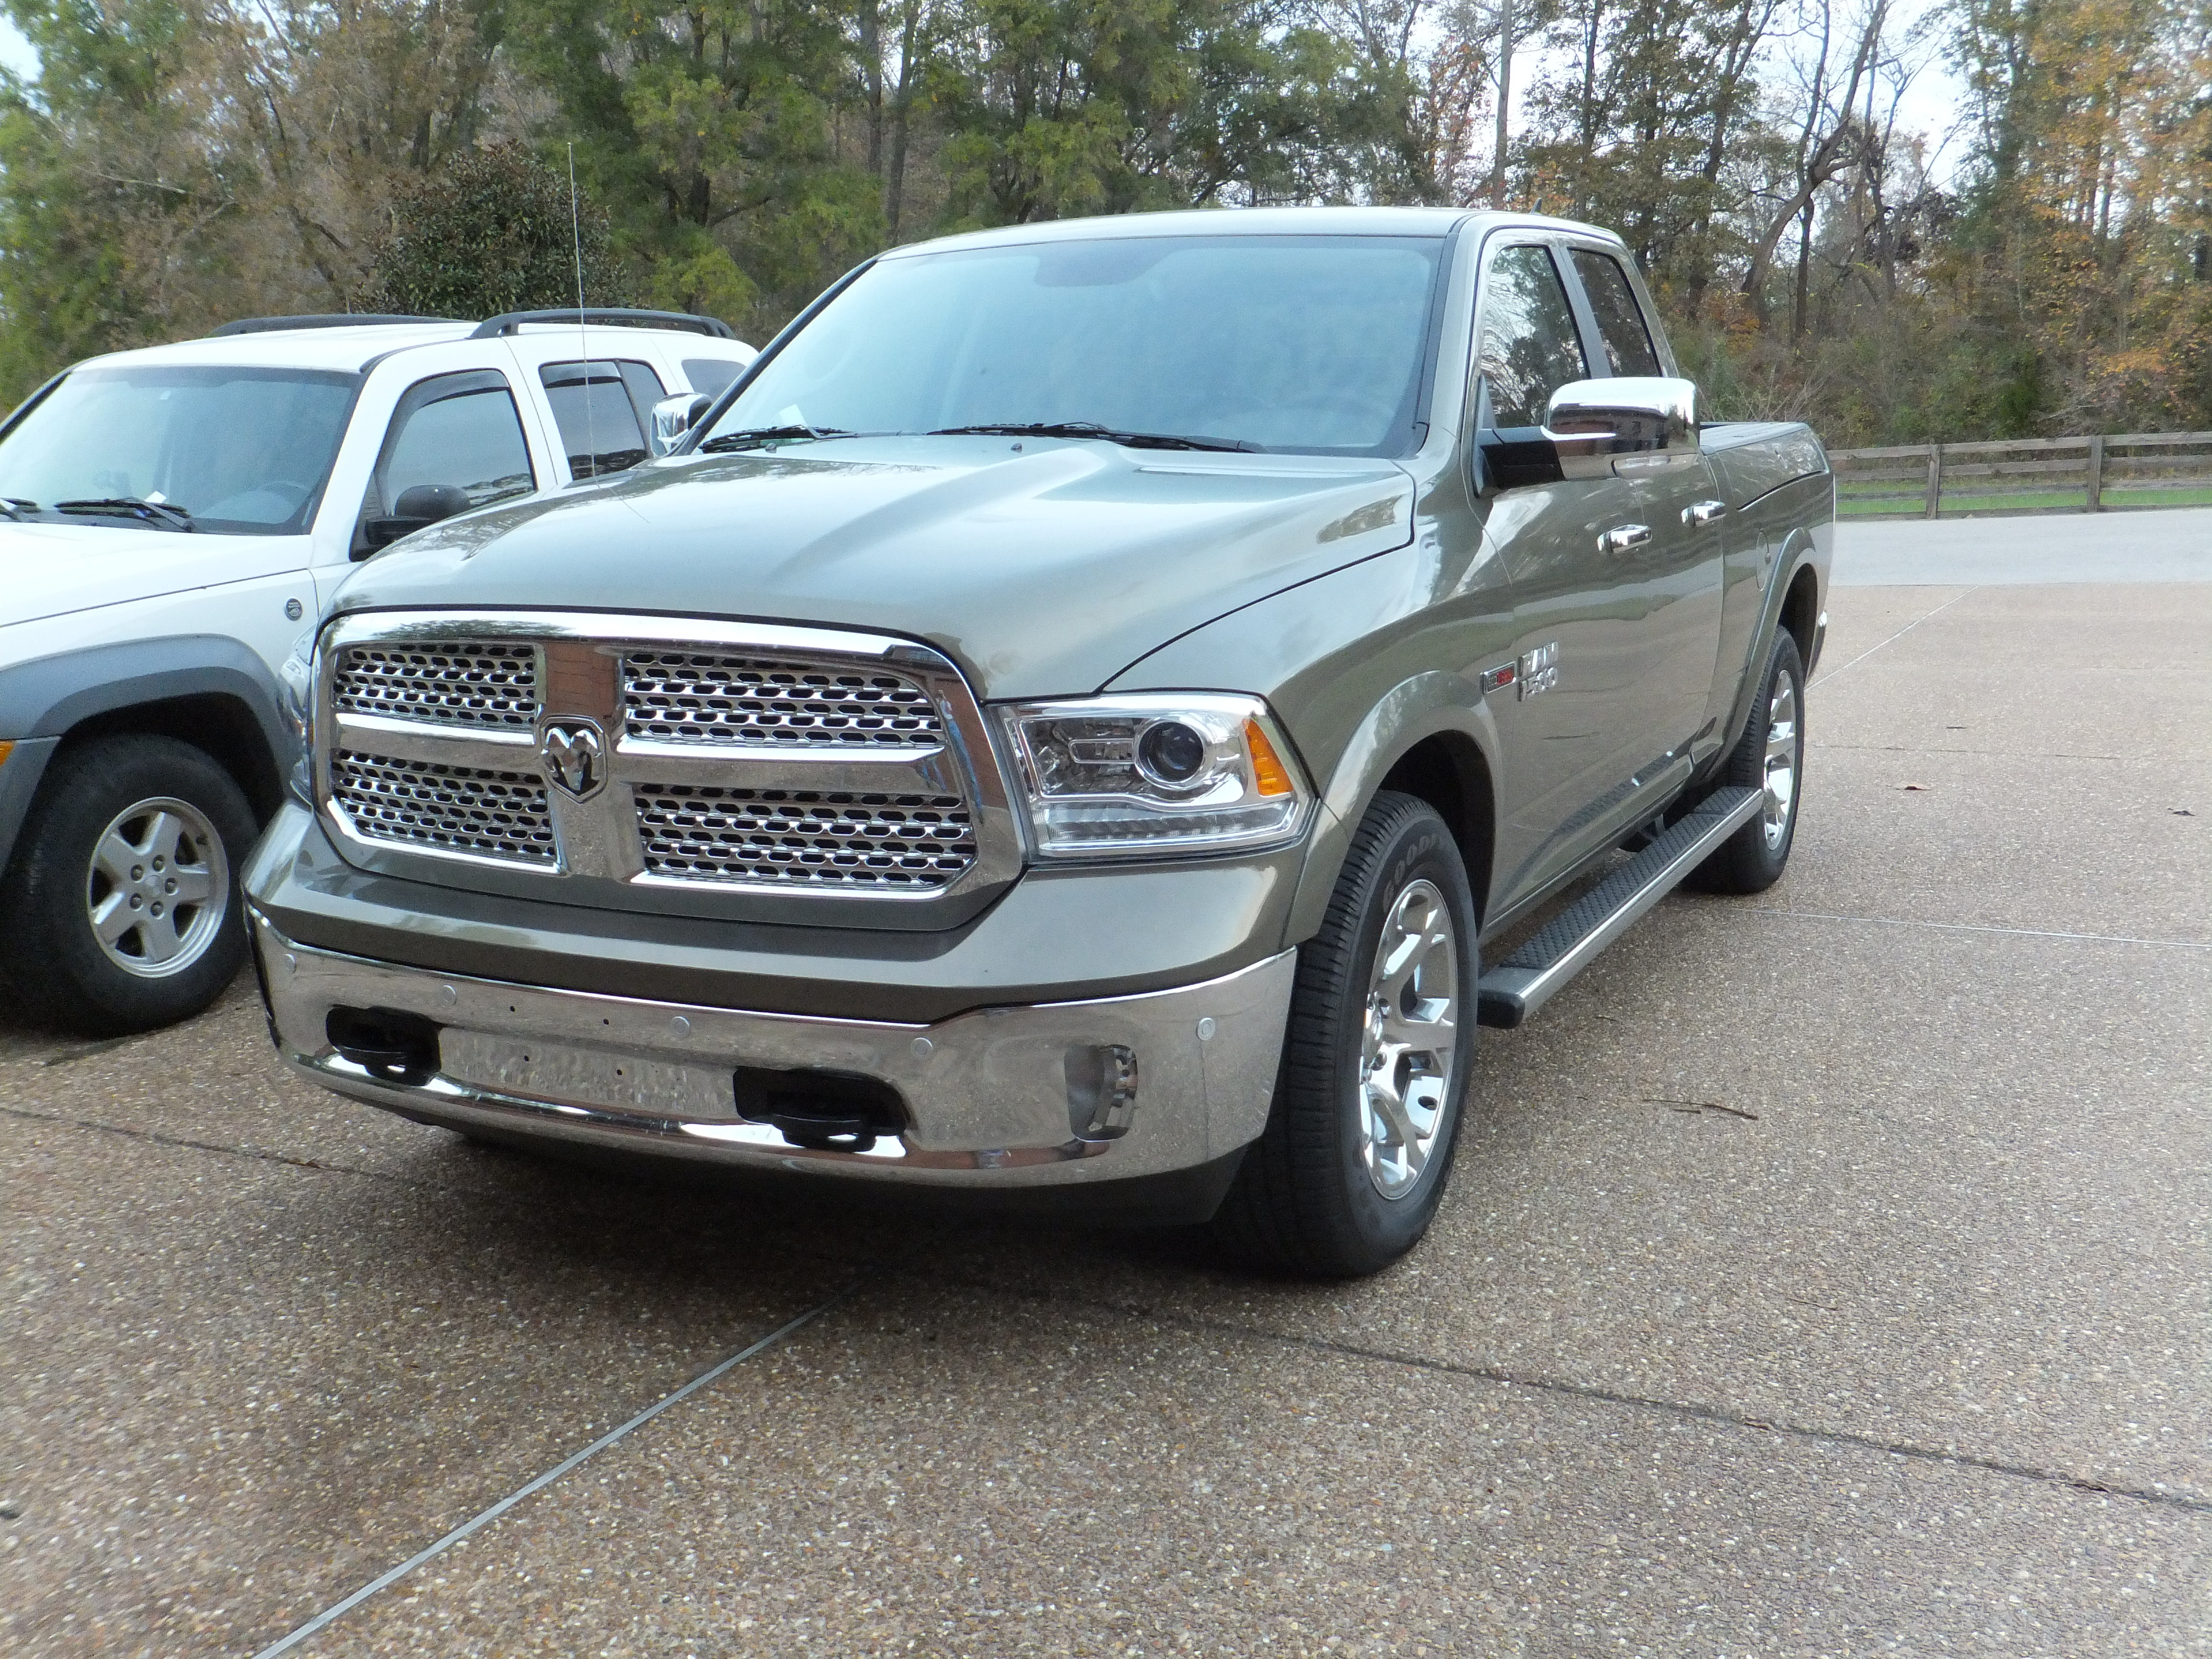 Welcome To The Dodge Ram 1500 Diesel Forum Please Post An